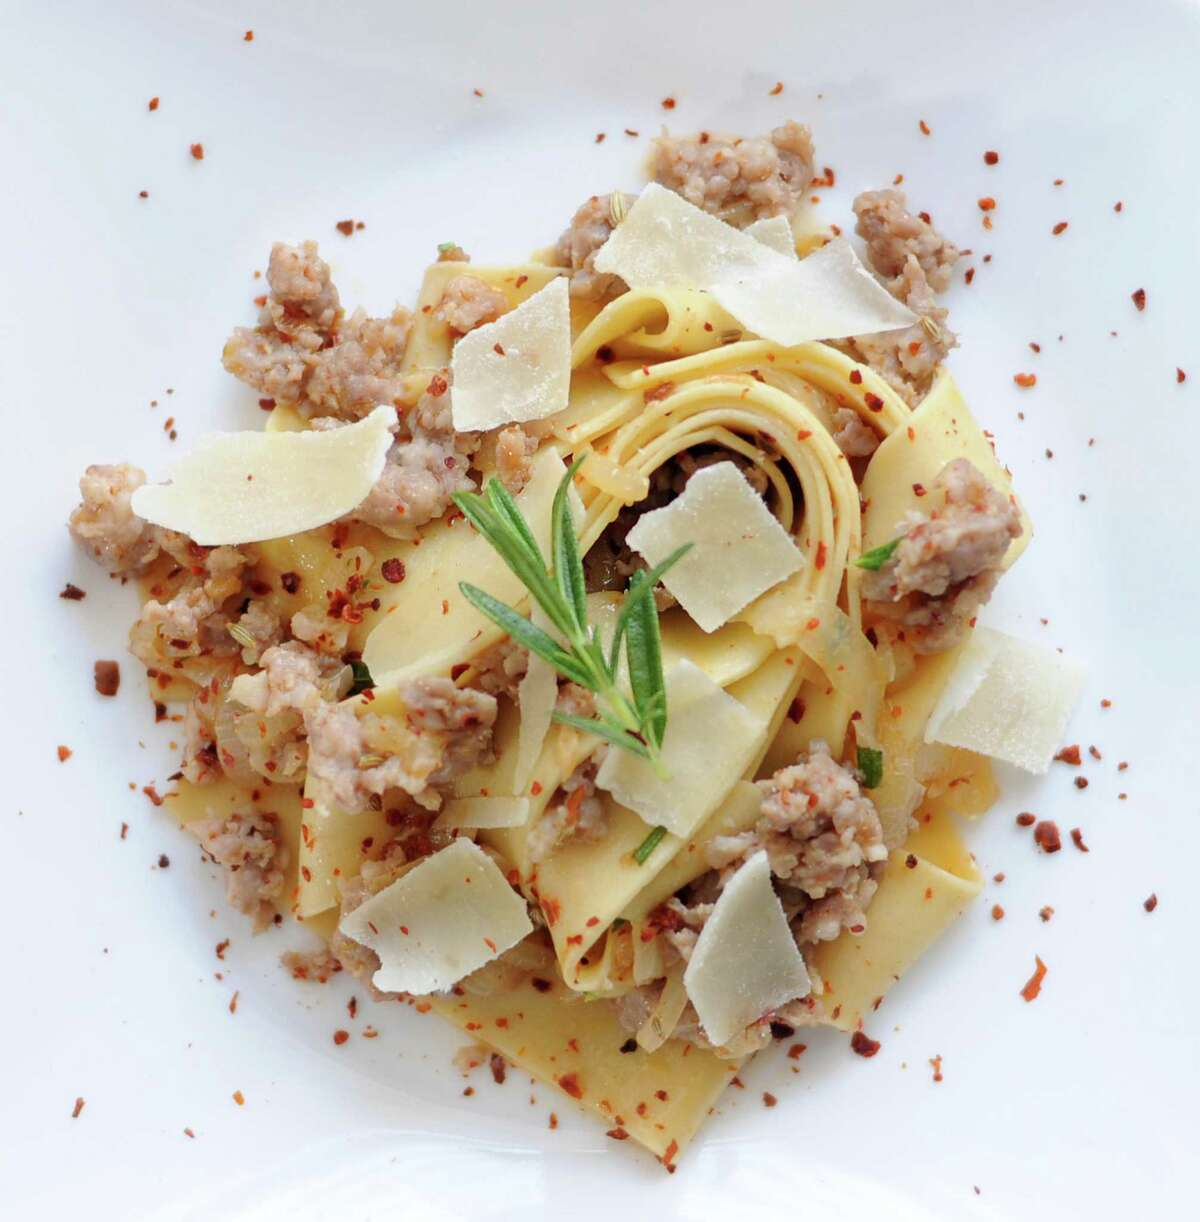 Pappardelle with sausage and rosemary